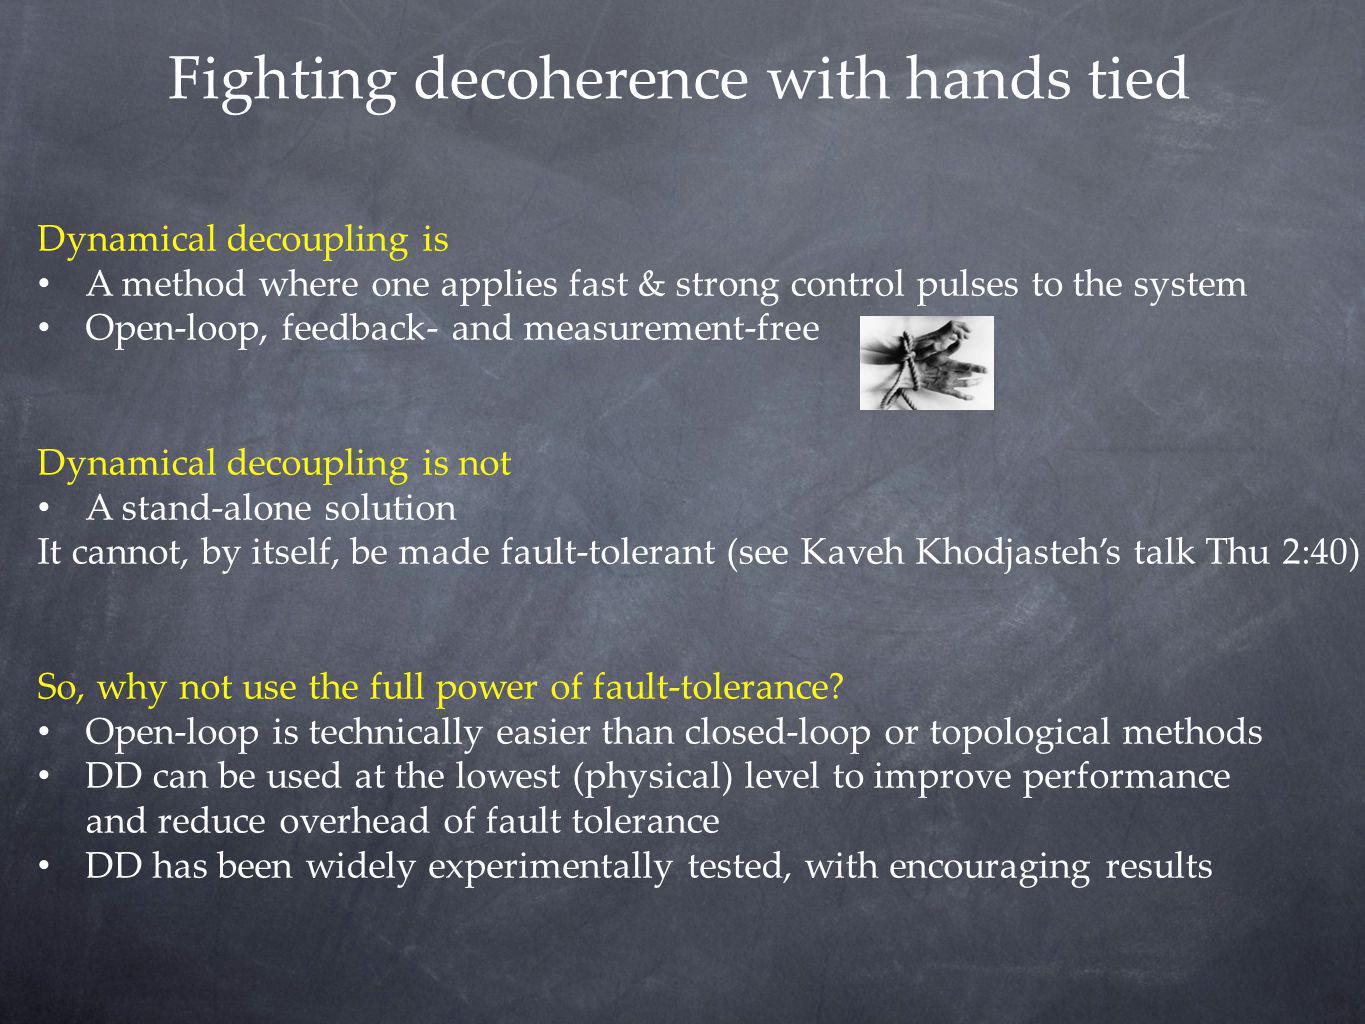 Fighting decoherence with hands tied